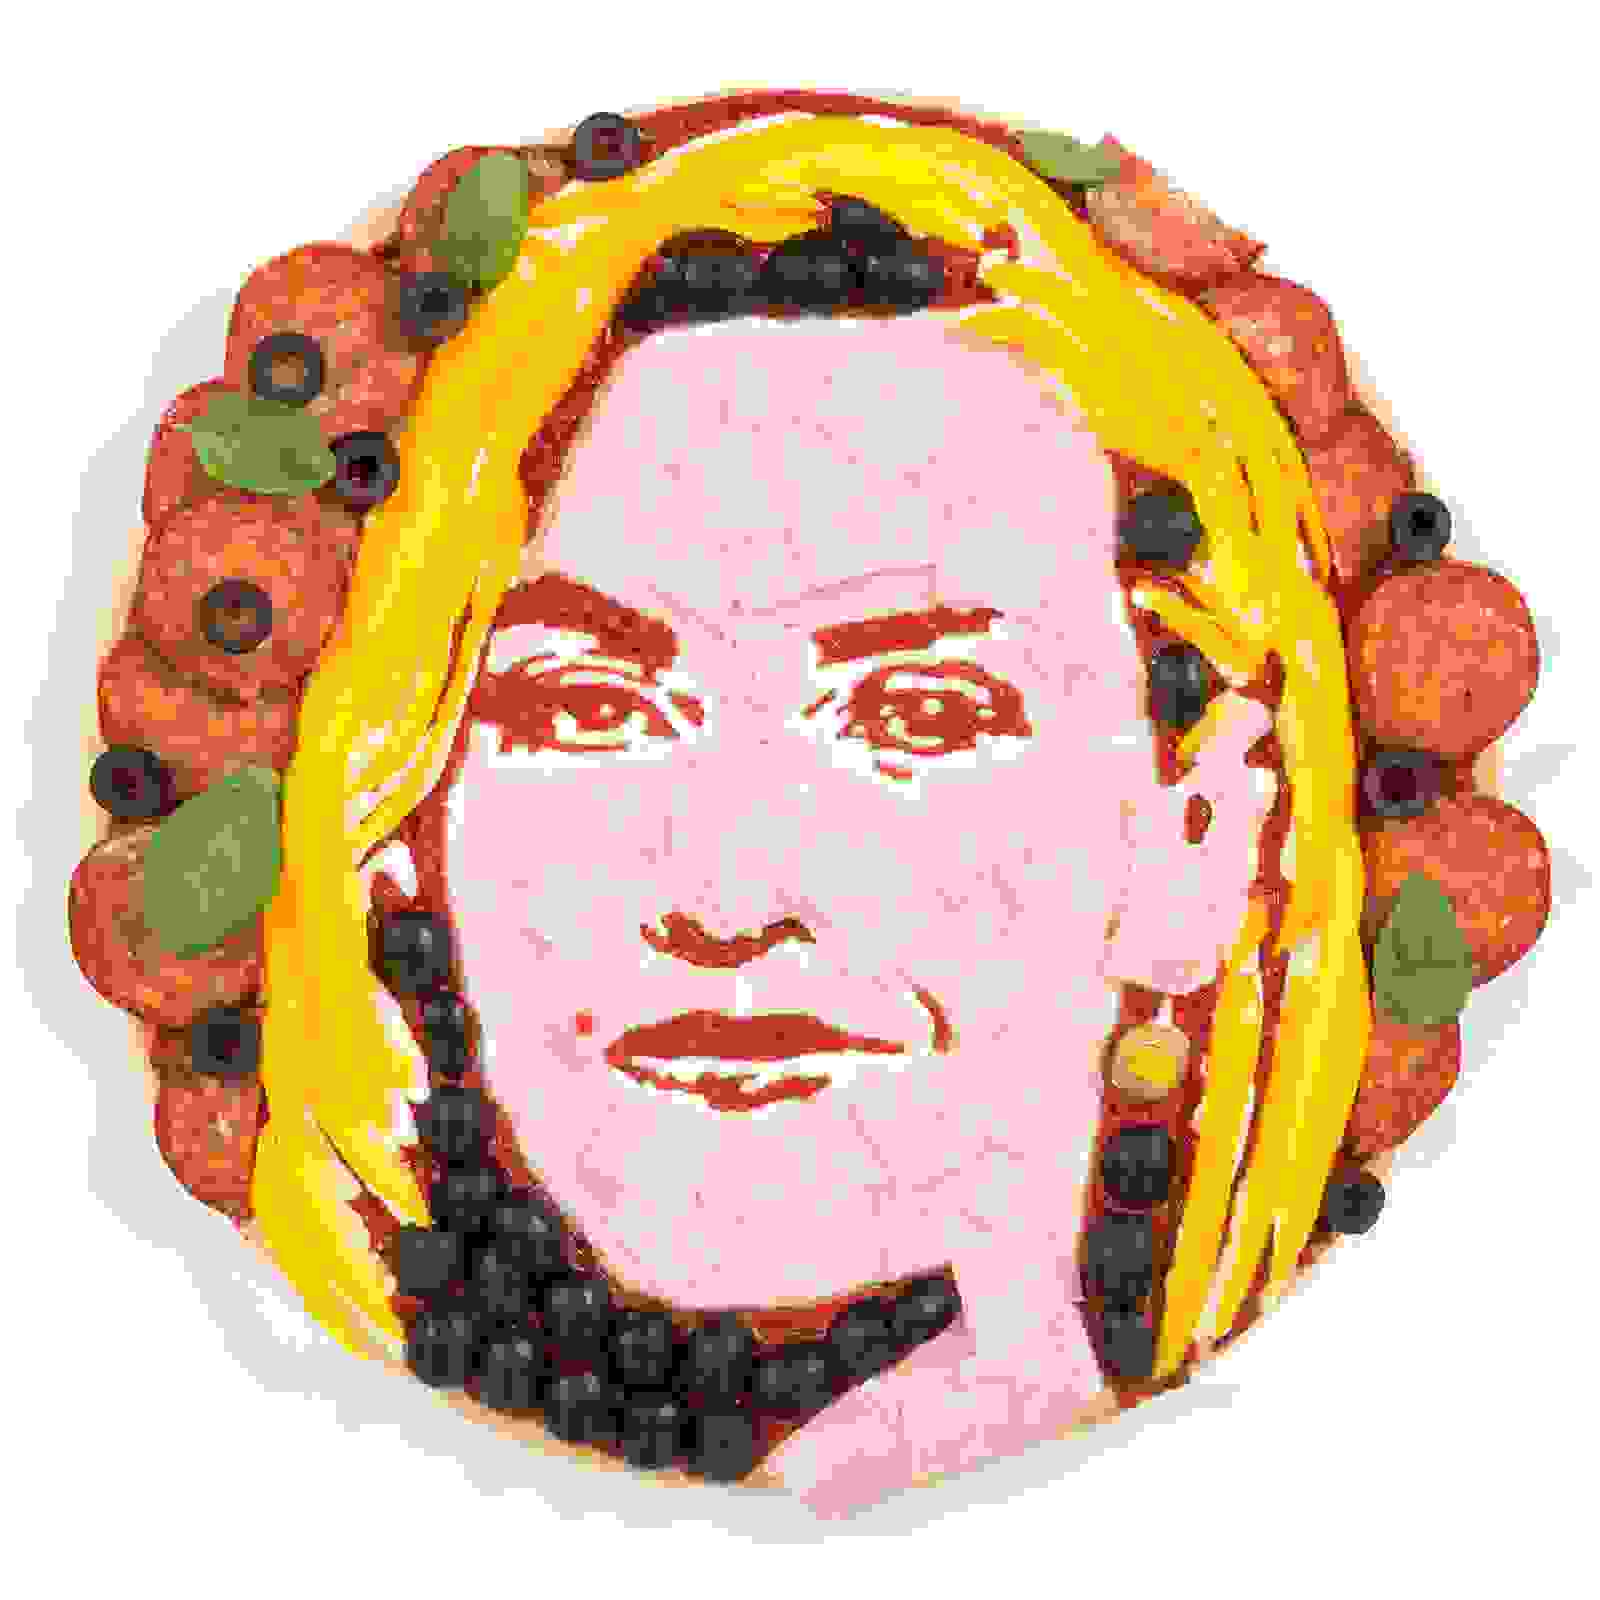 Kate Winslet Pizza